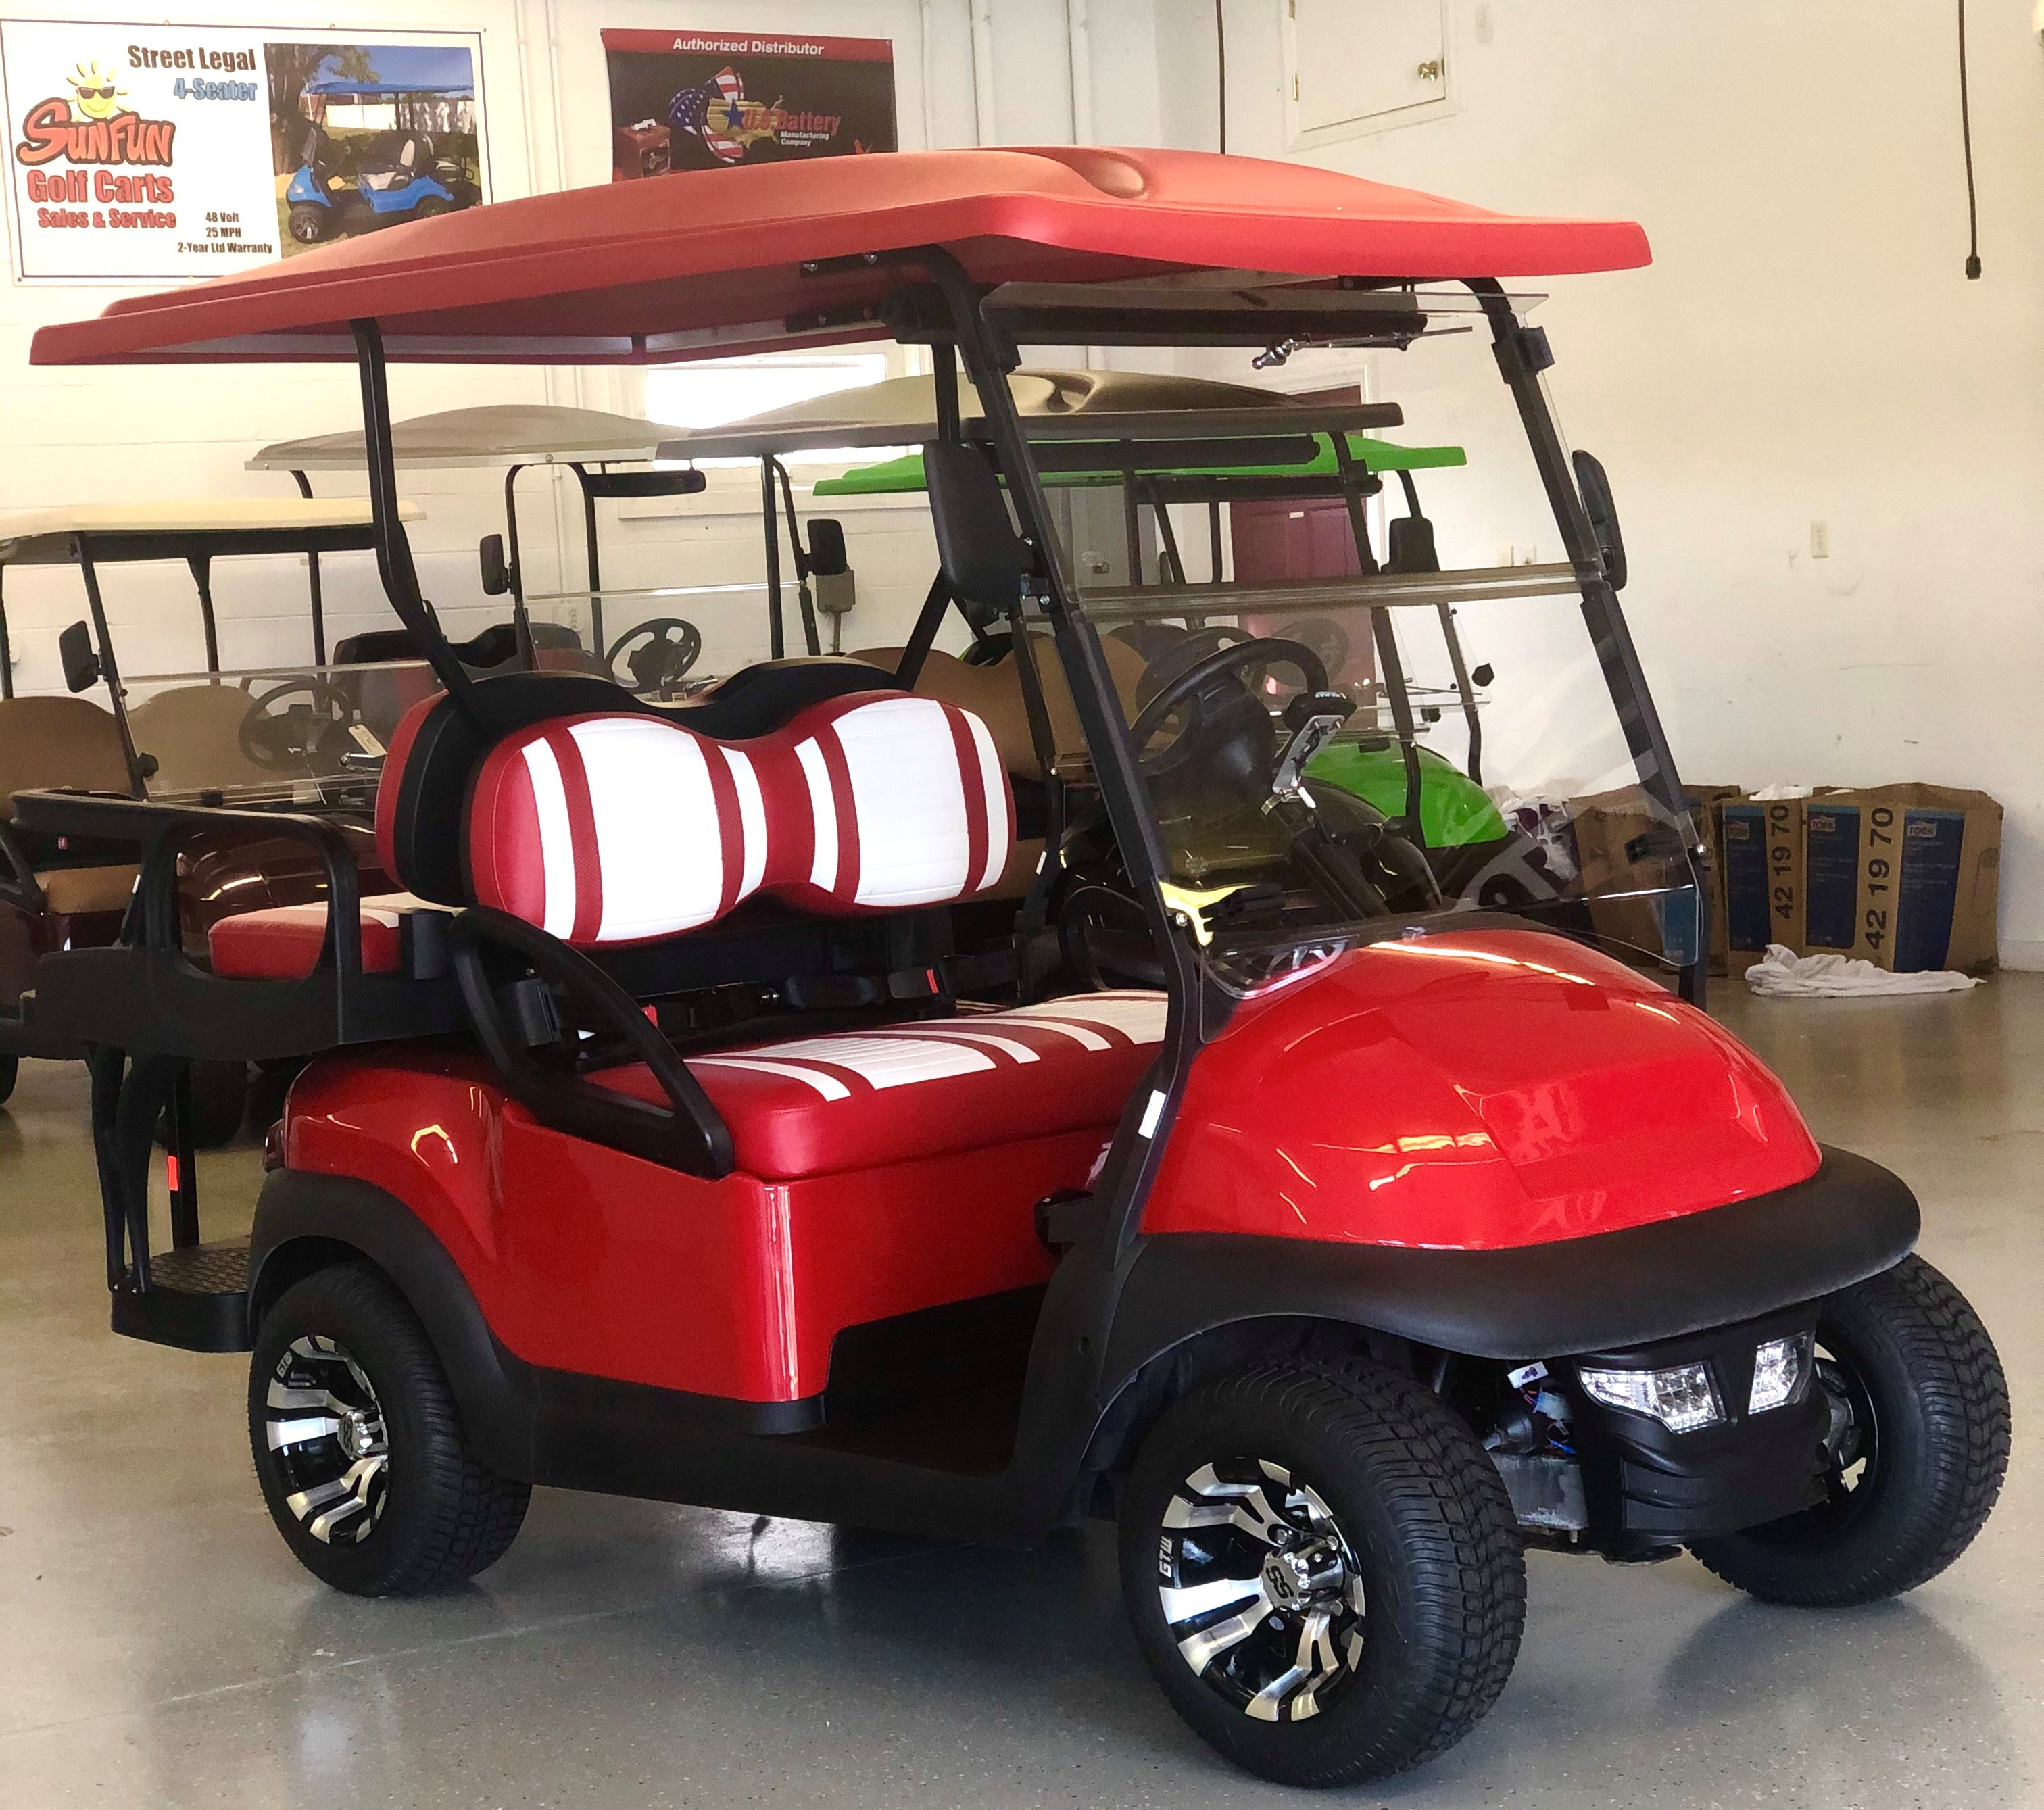 2021 CLUB CAR PRECEDENT 4 PASSENGER